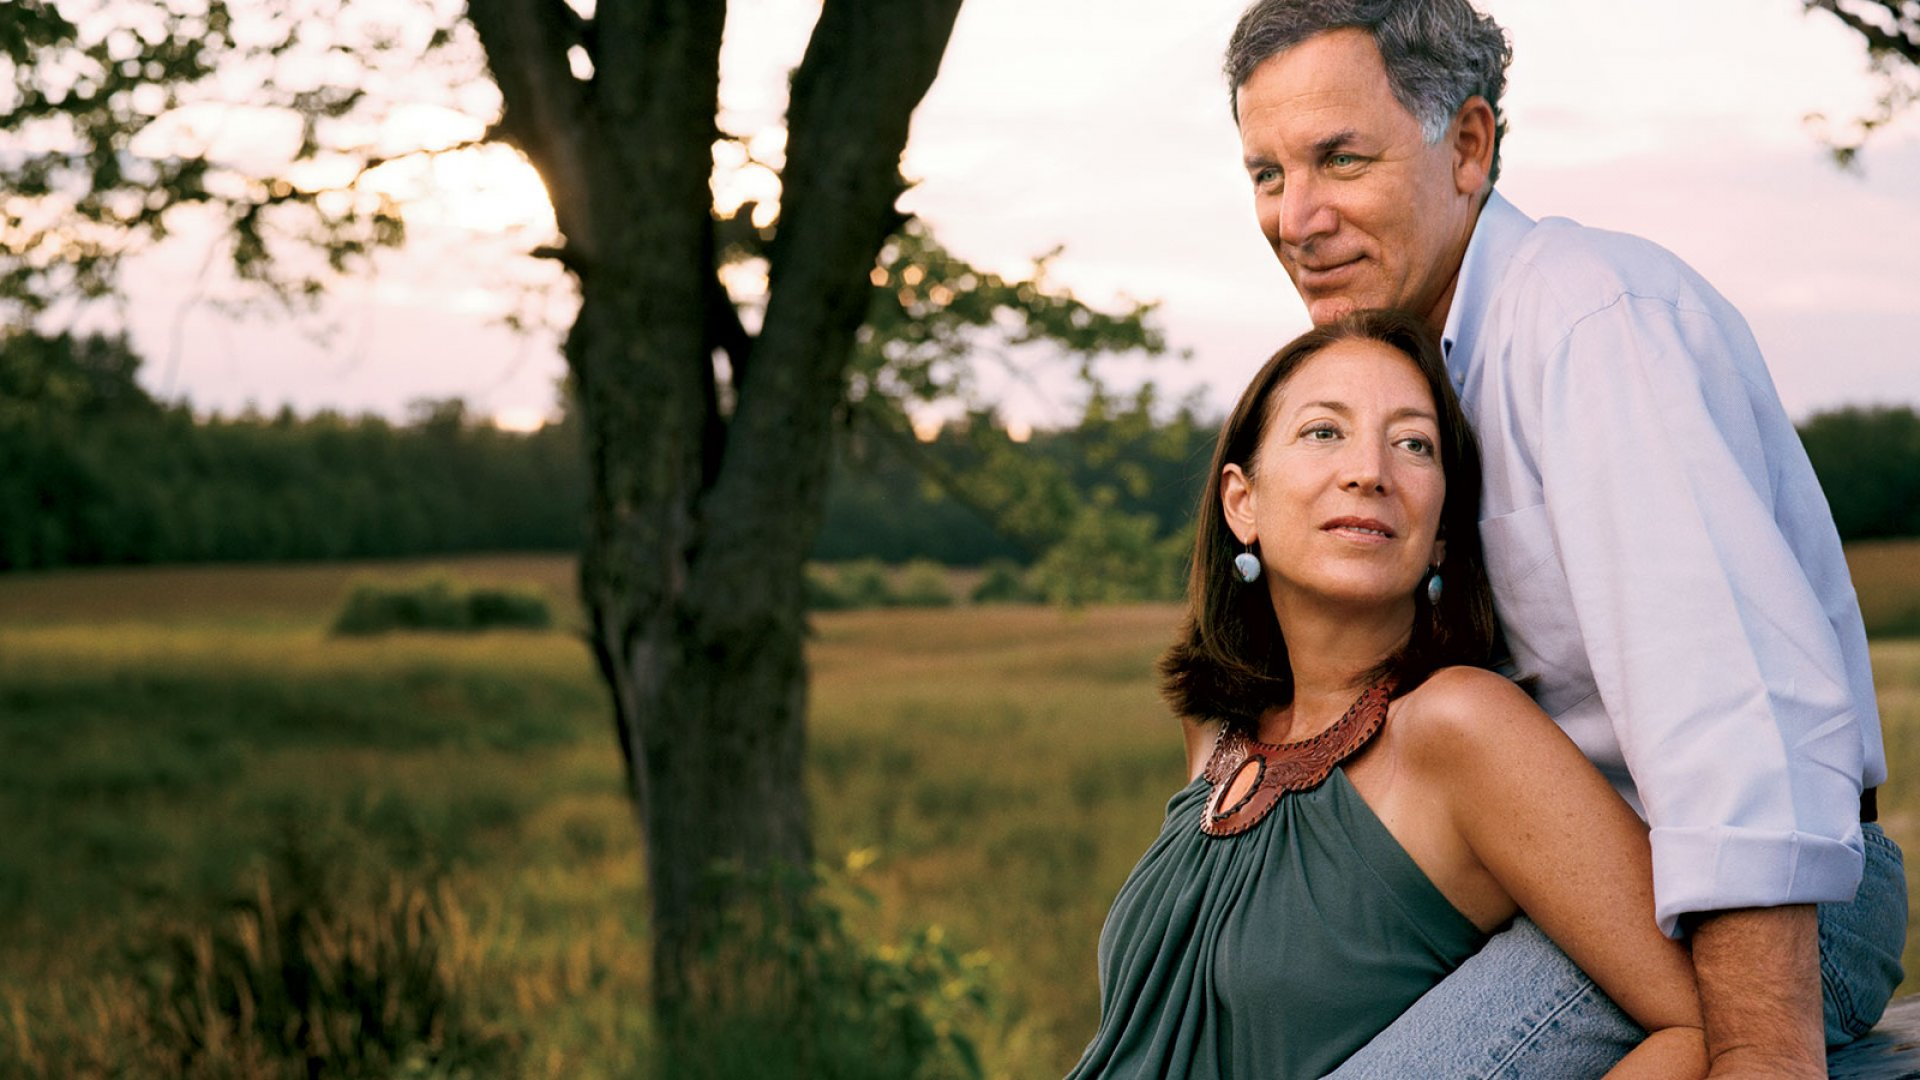 The author and husband, Gary, July 2008. His yogurt company, Stonyfield Farm, was ranked No. 113 on the Inc. 500 in 1990. At the time, Meg was skeptical of its long-term prospects.